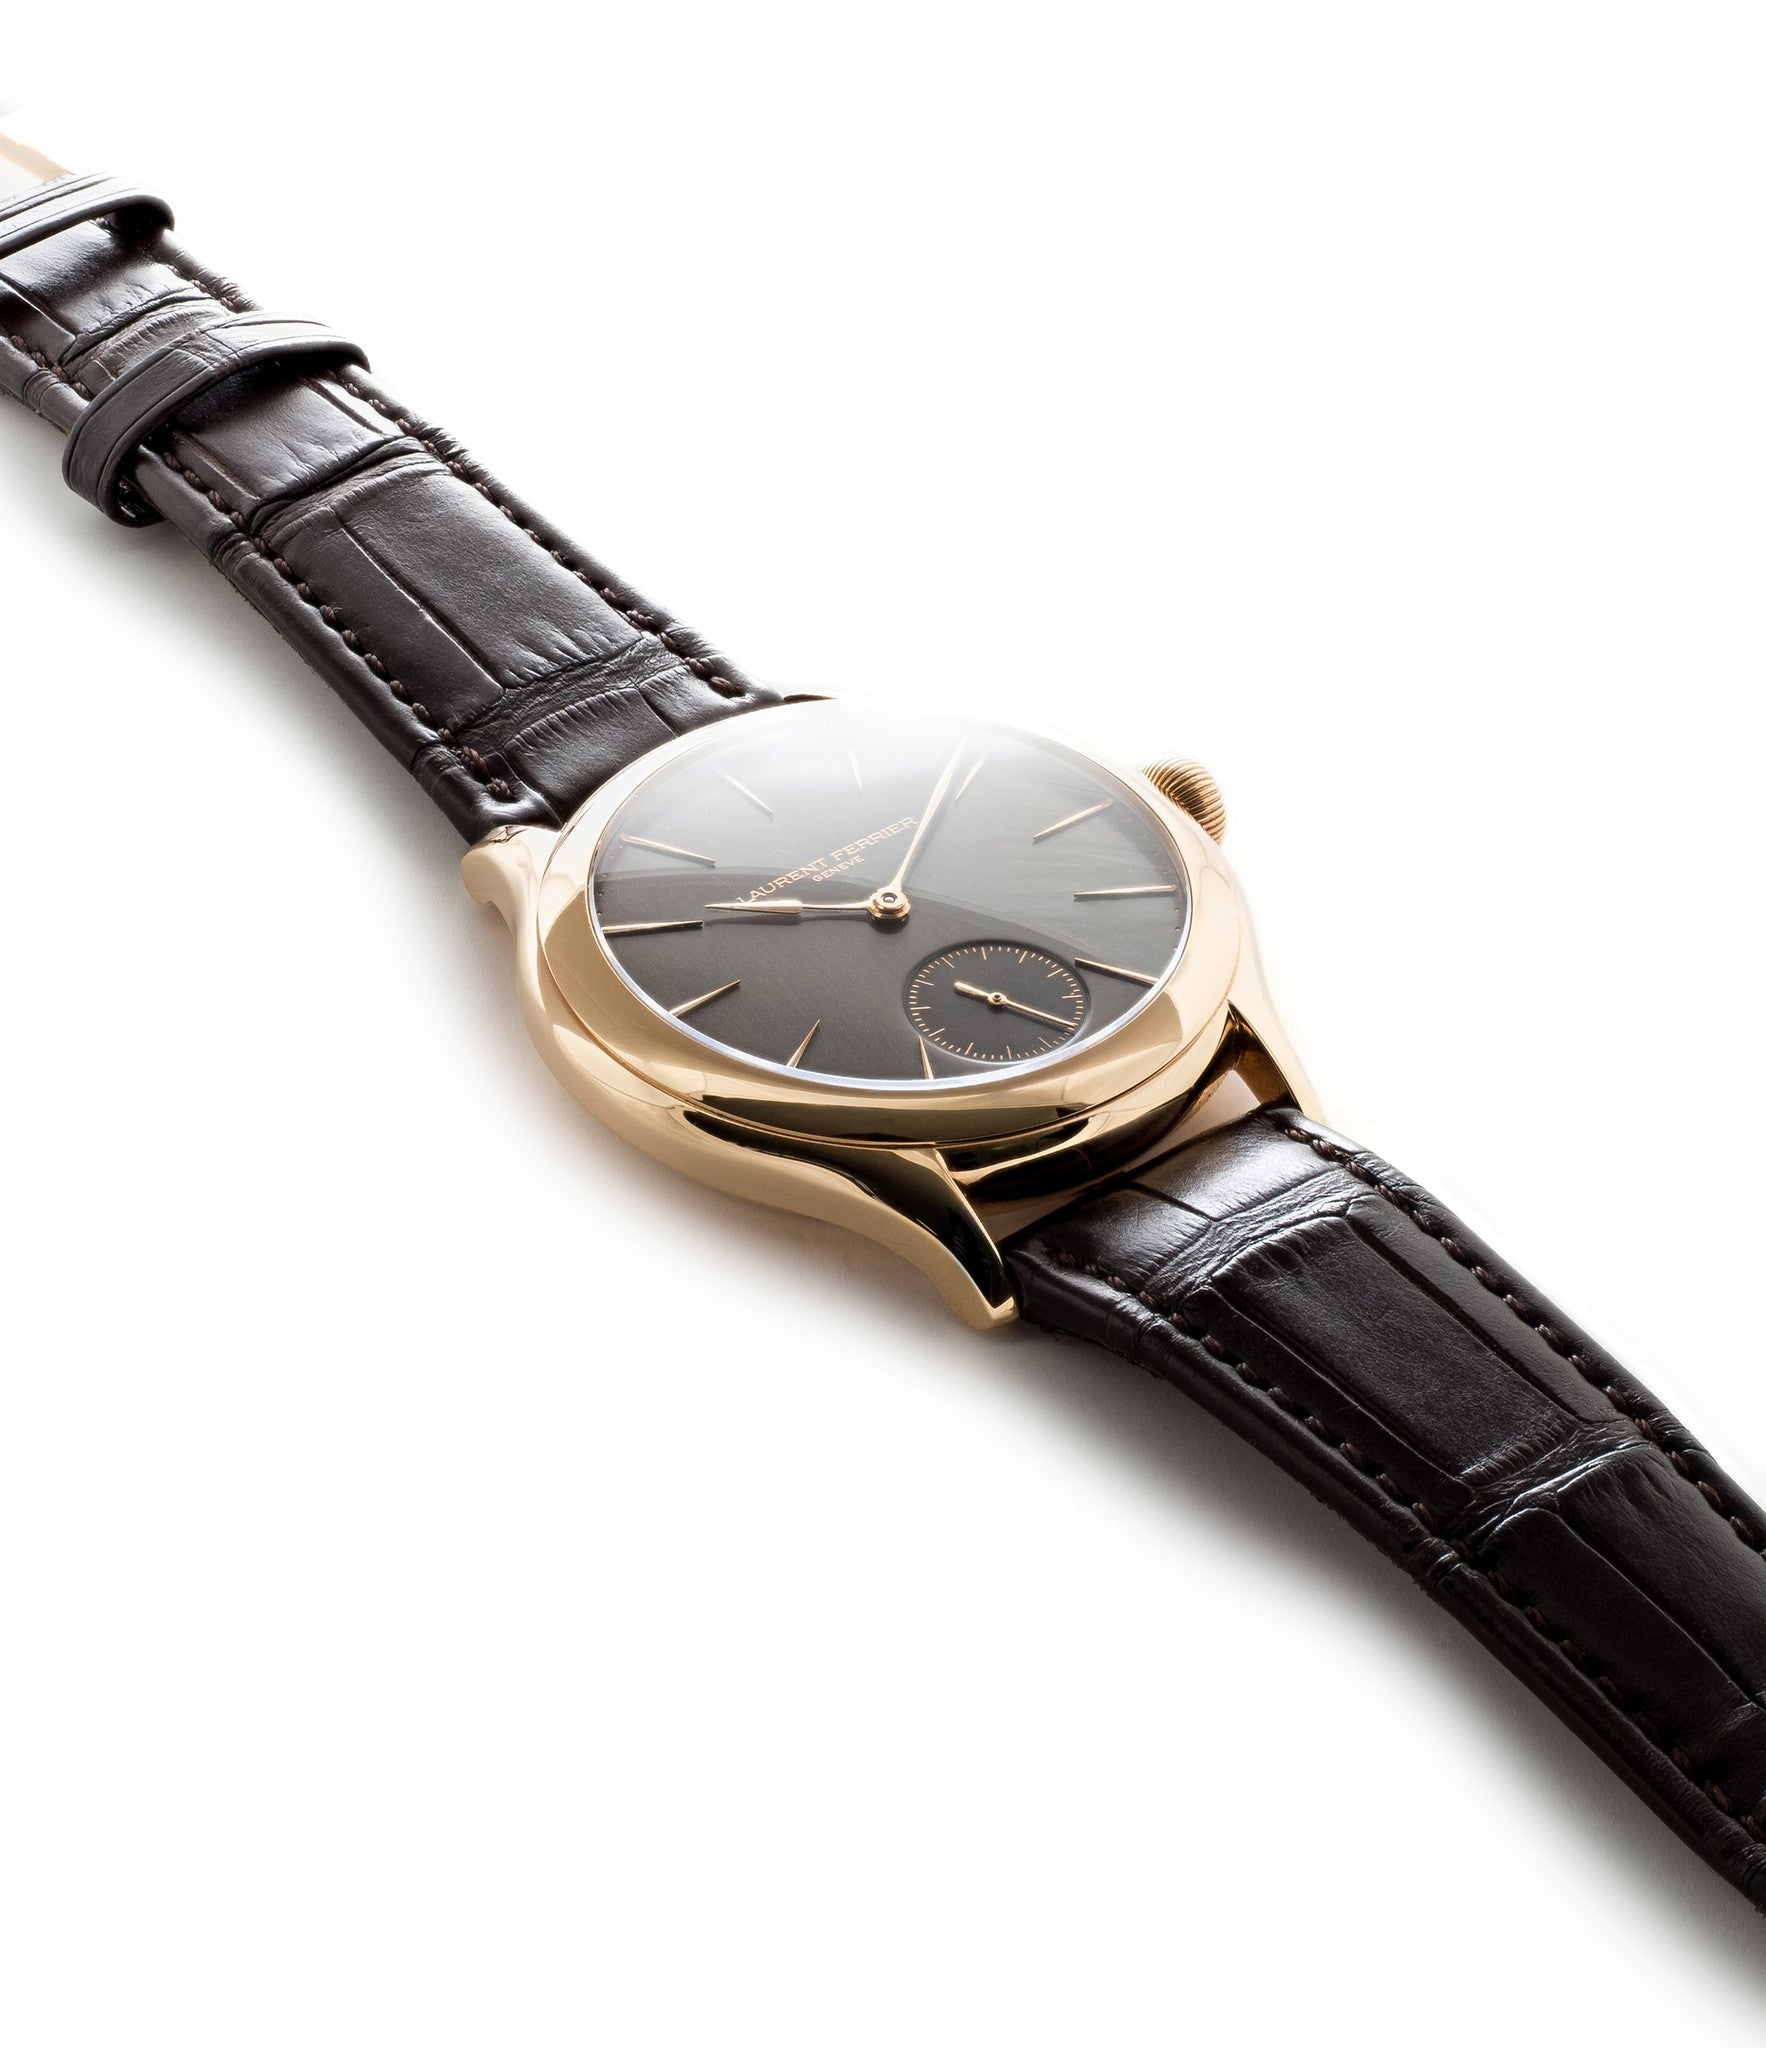 buy Laurent Ferrier Galet Micro-Rotor LCF004-R rose gold time-only automatic dress watch slate dial from independent watchmaker for sale online WATCH XCHANGE London full set with authenticity guranteed